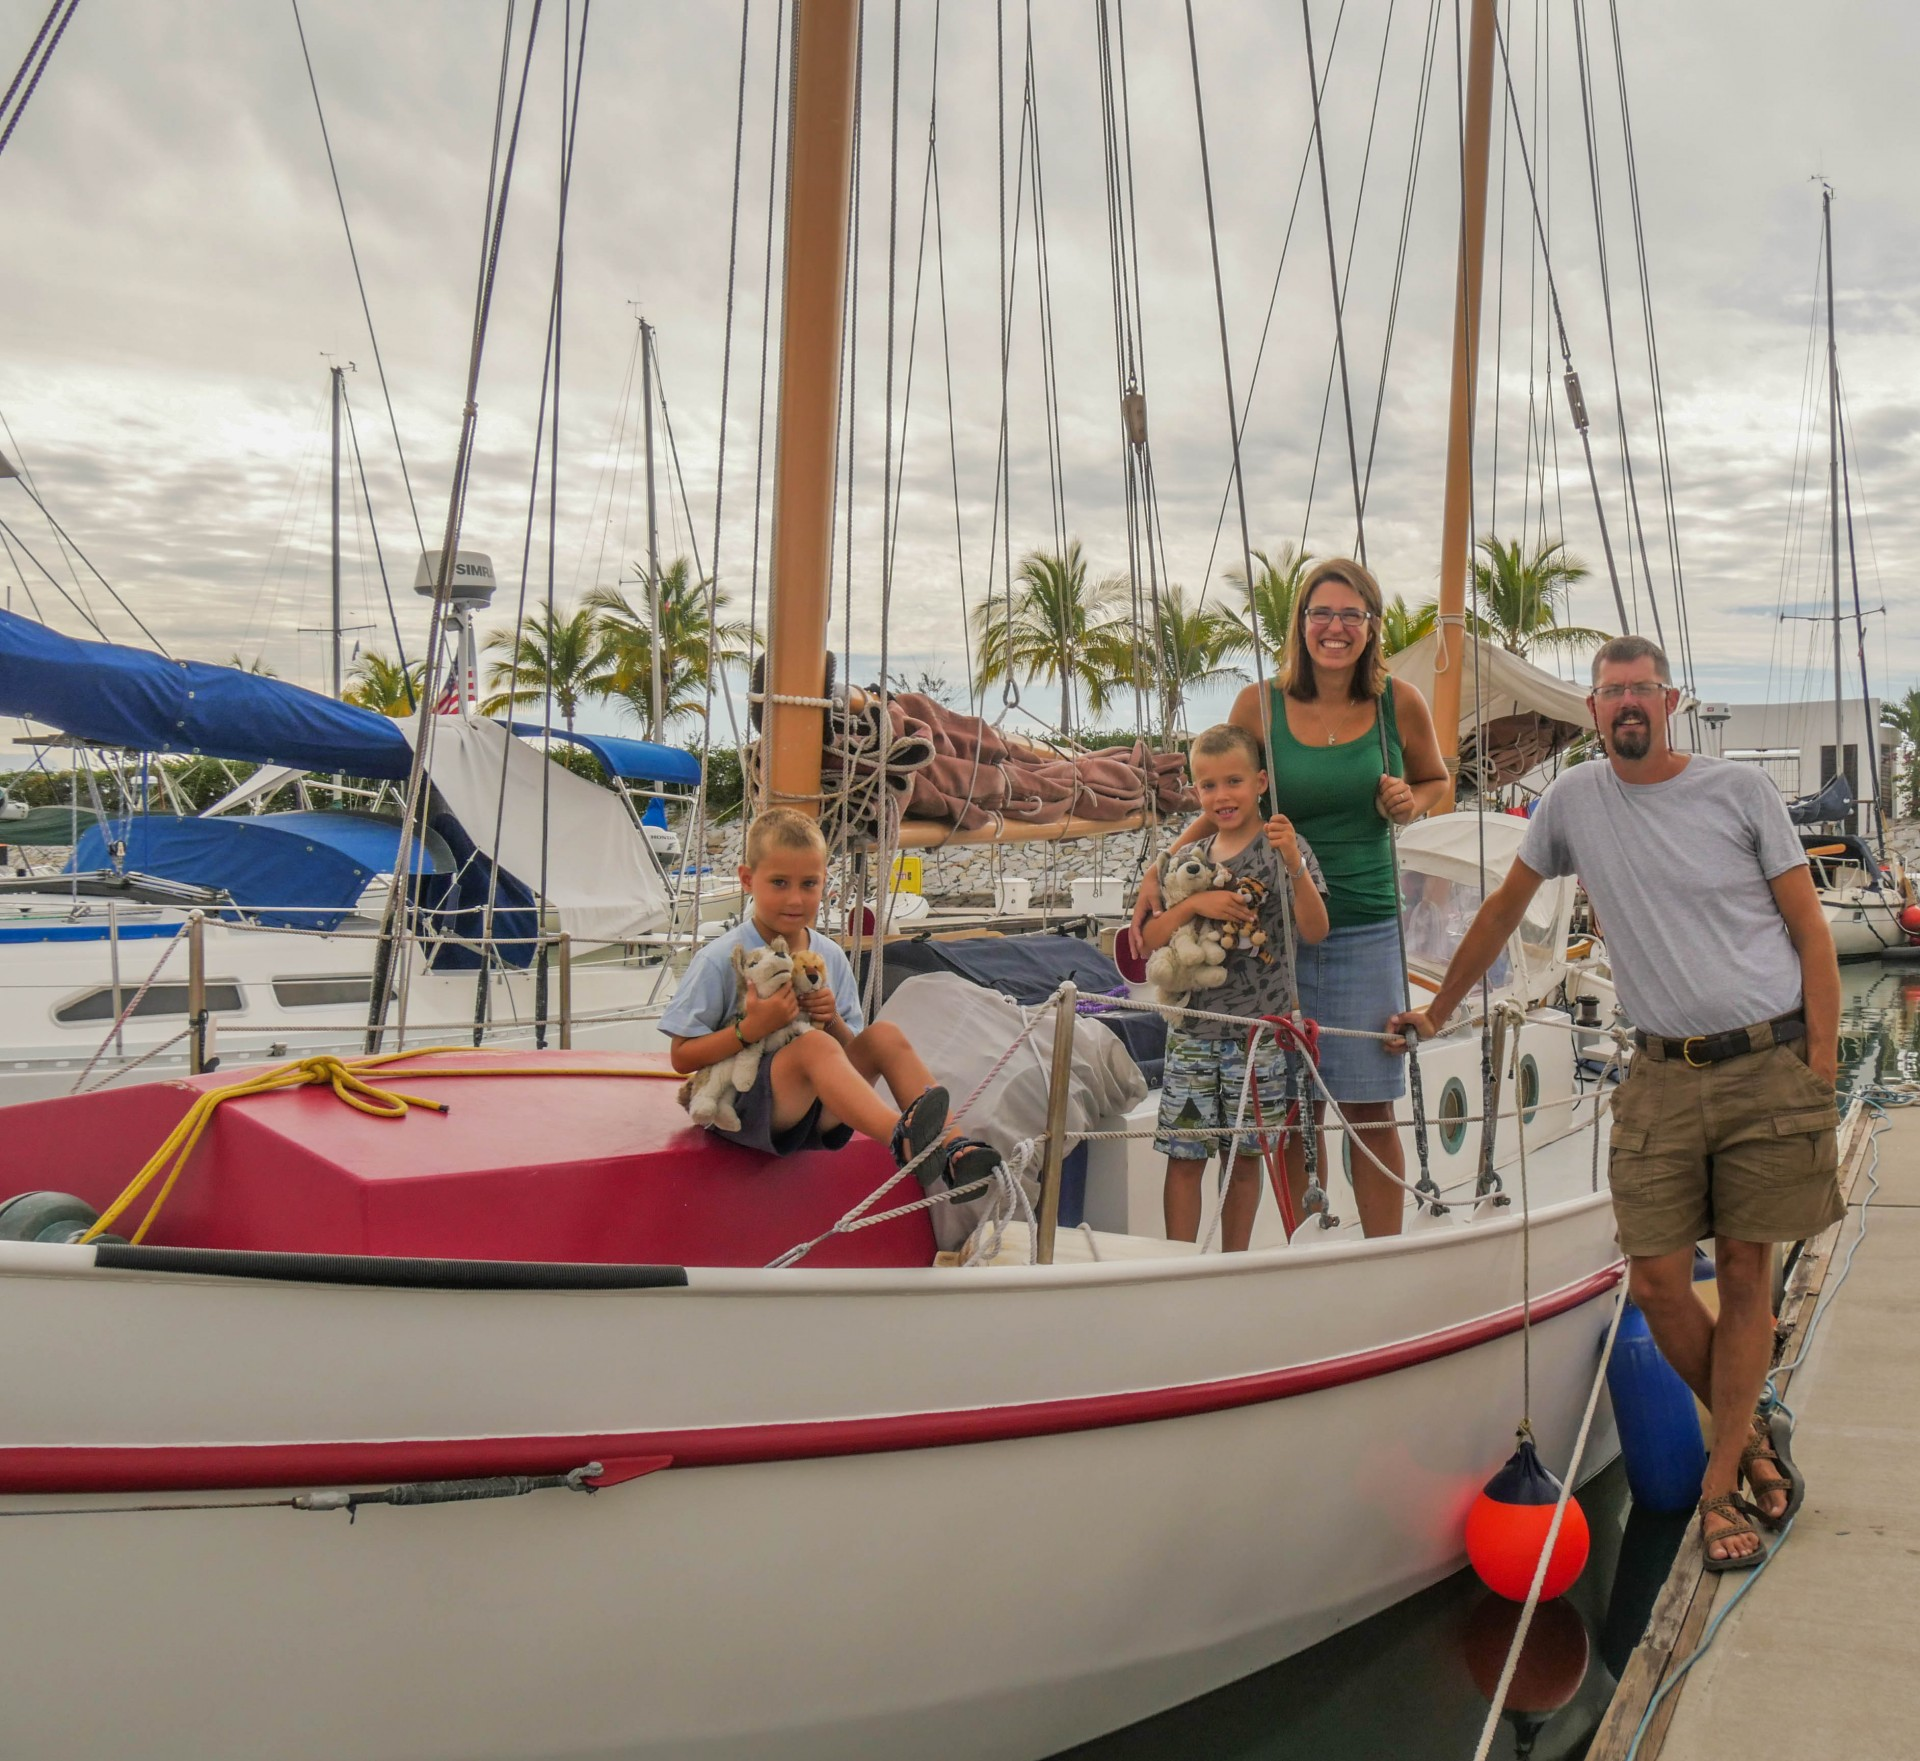 Tor, Jess, Lars and Odin Bjorklund sailed their homebuilt 32' foot steel ketch from Seattle and were our neighbors in La Cruz--best neighbors ever!! They set off for Hawaii together around the time we left.